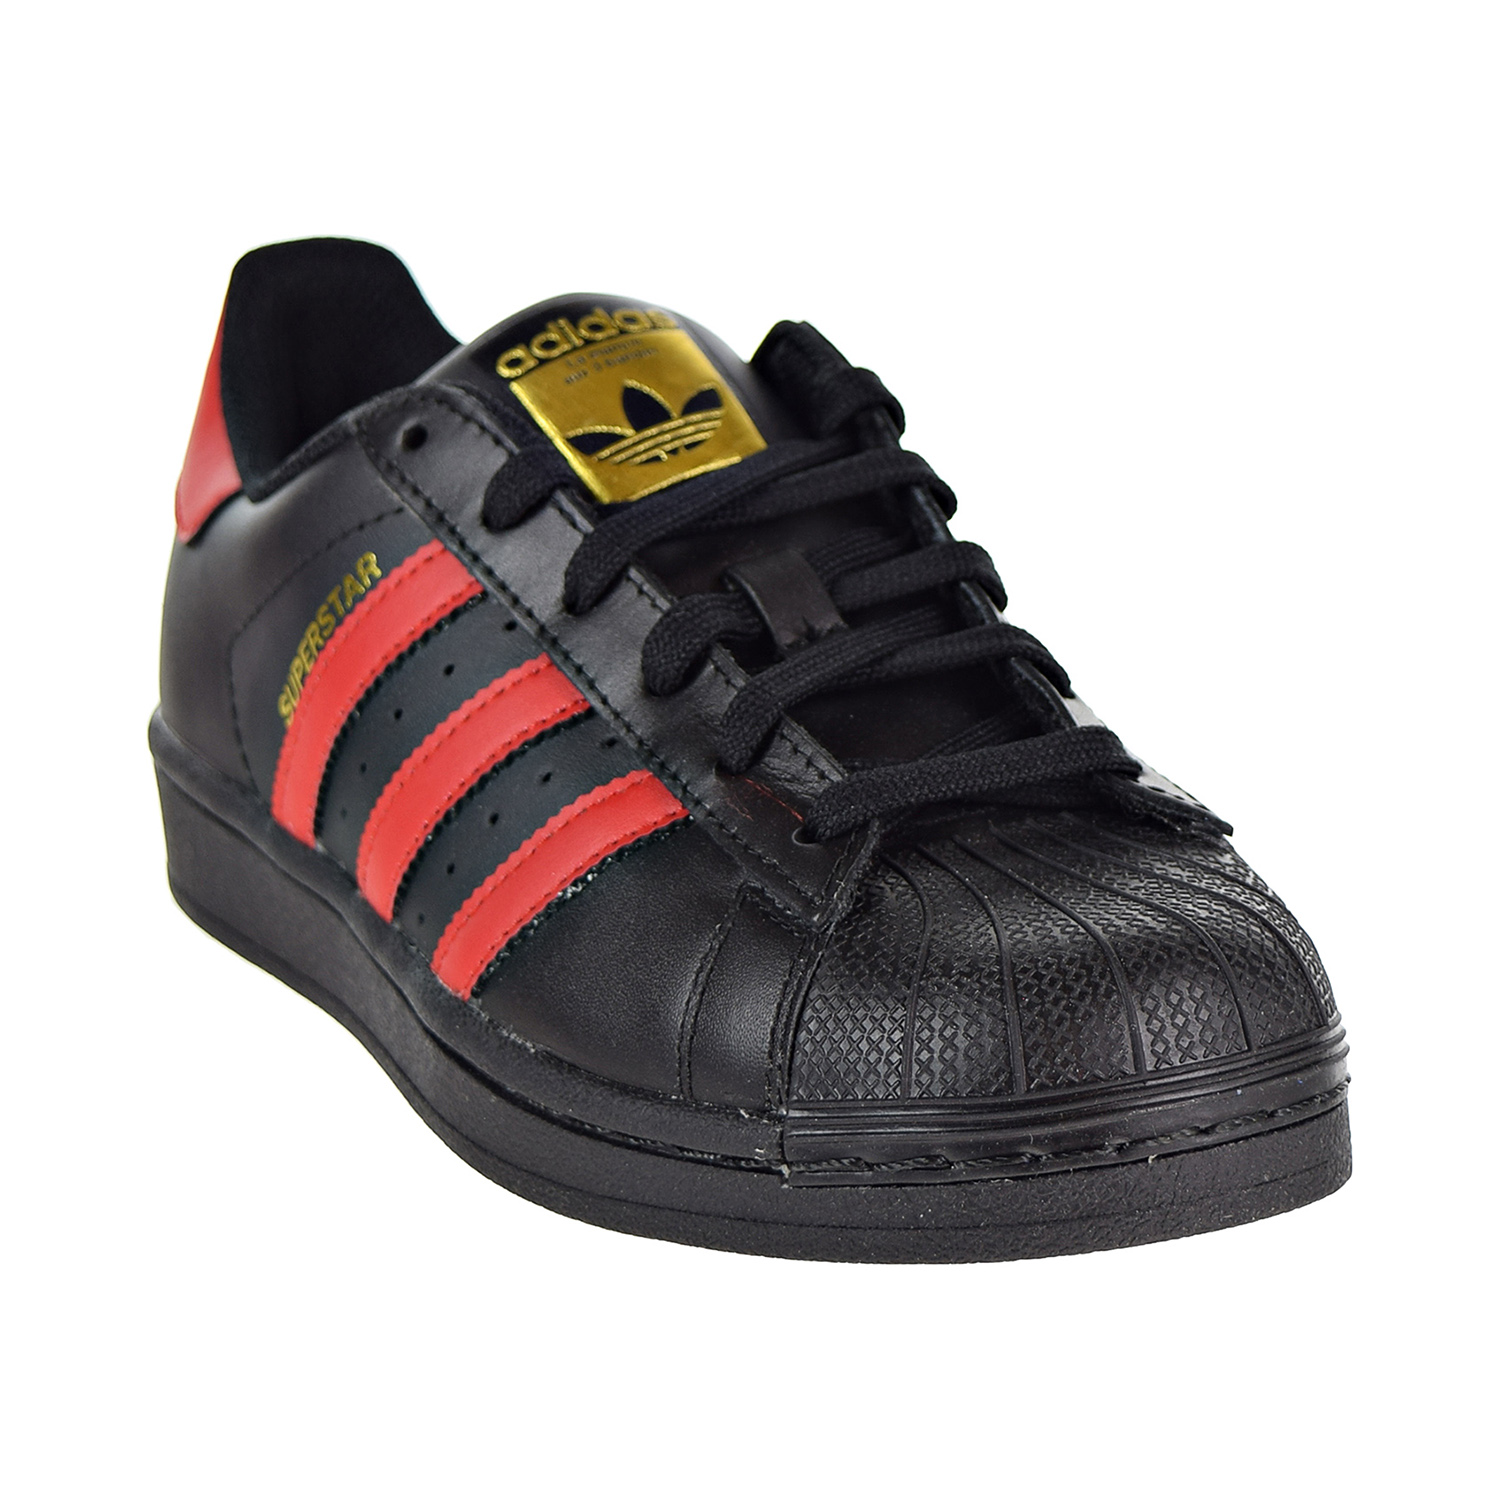 84ea72a66b9fd4 Adidas Originals Superstar J Big Kid s Shoes Black Red S80695